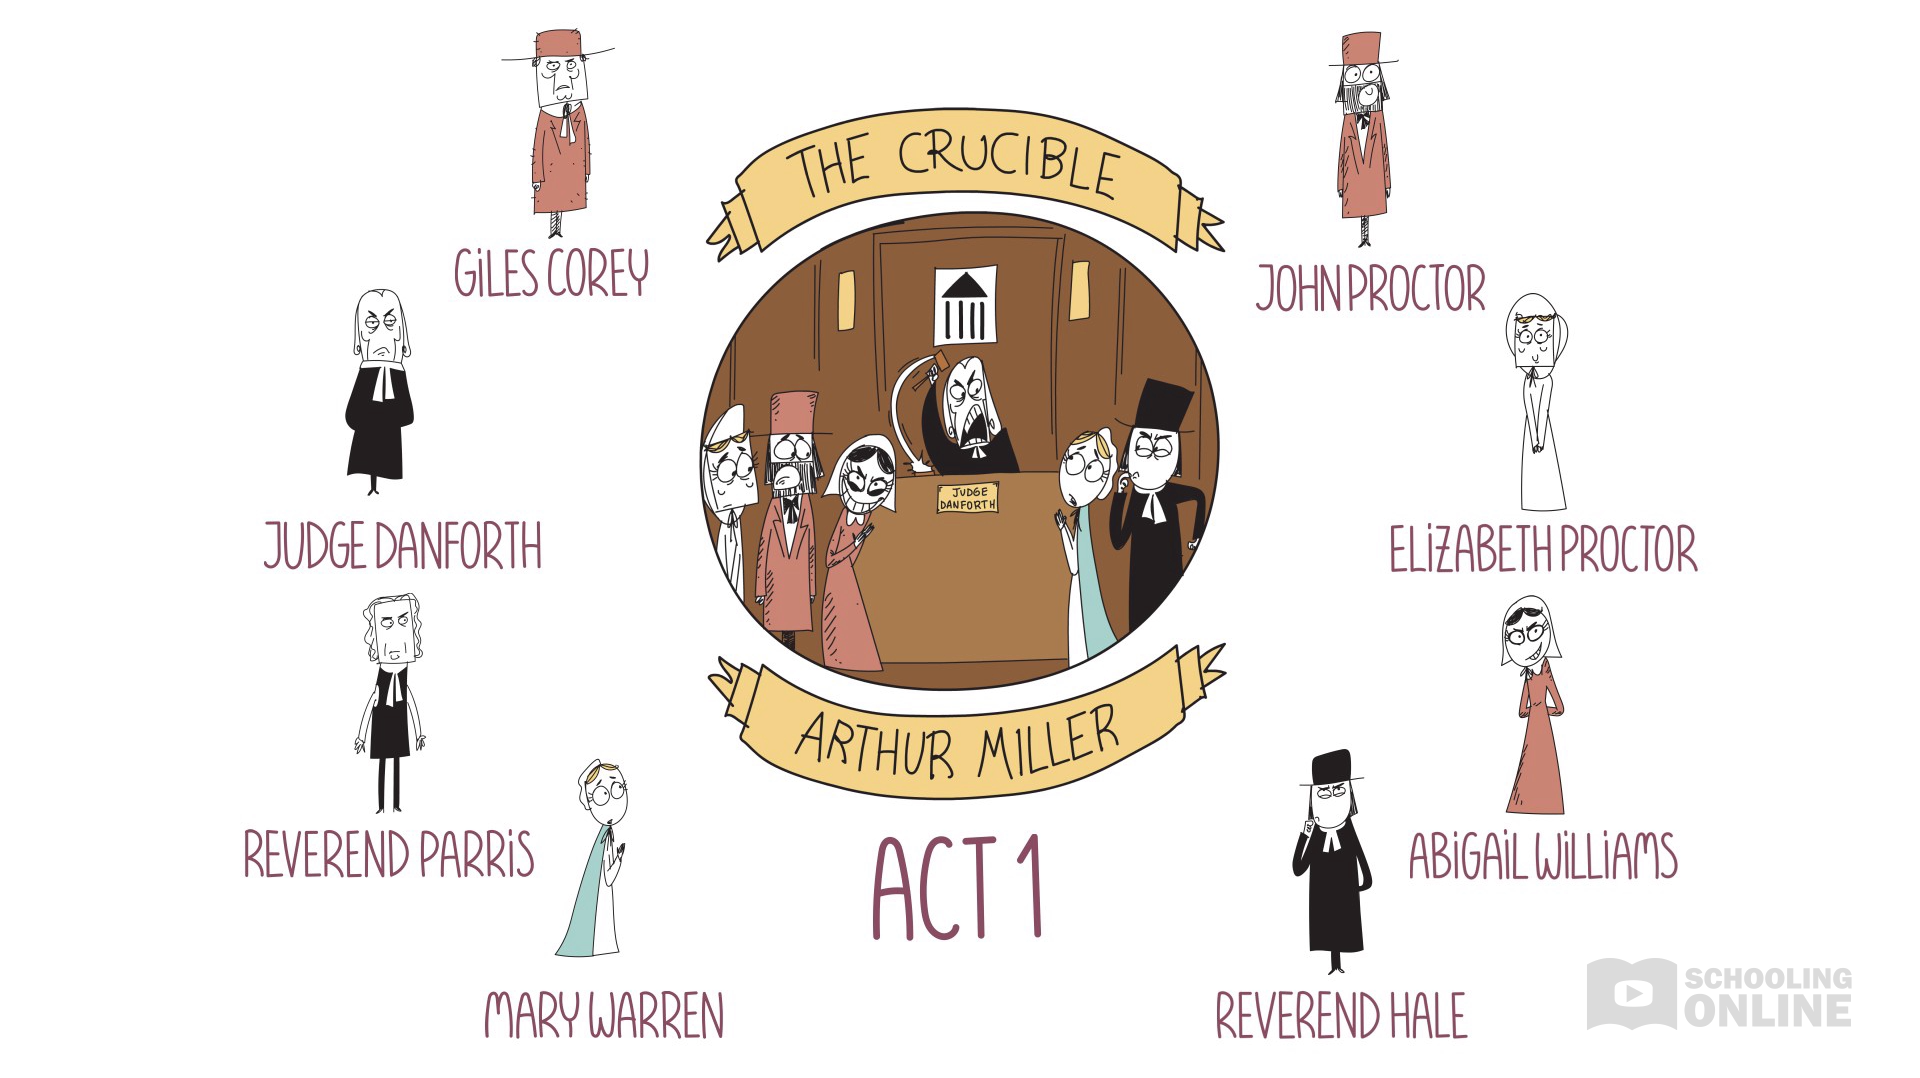 The Crucible - Arthur Miller - Act 1 Summary - Destroying Drama Series